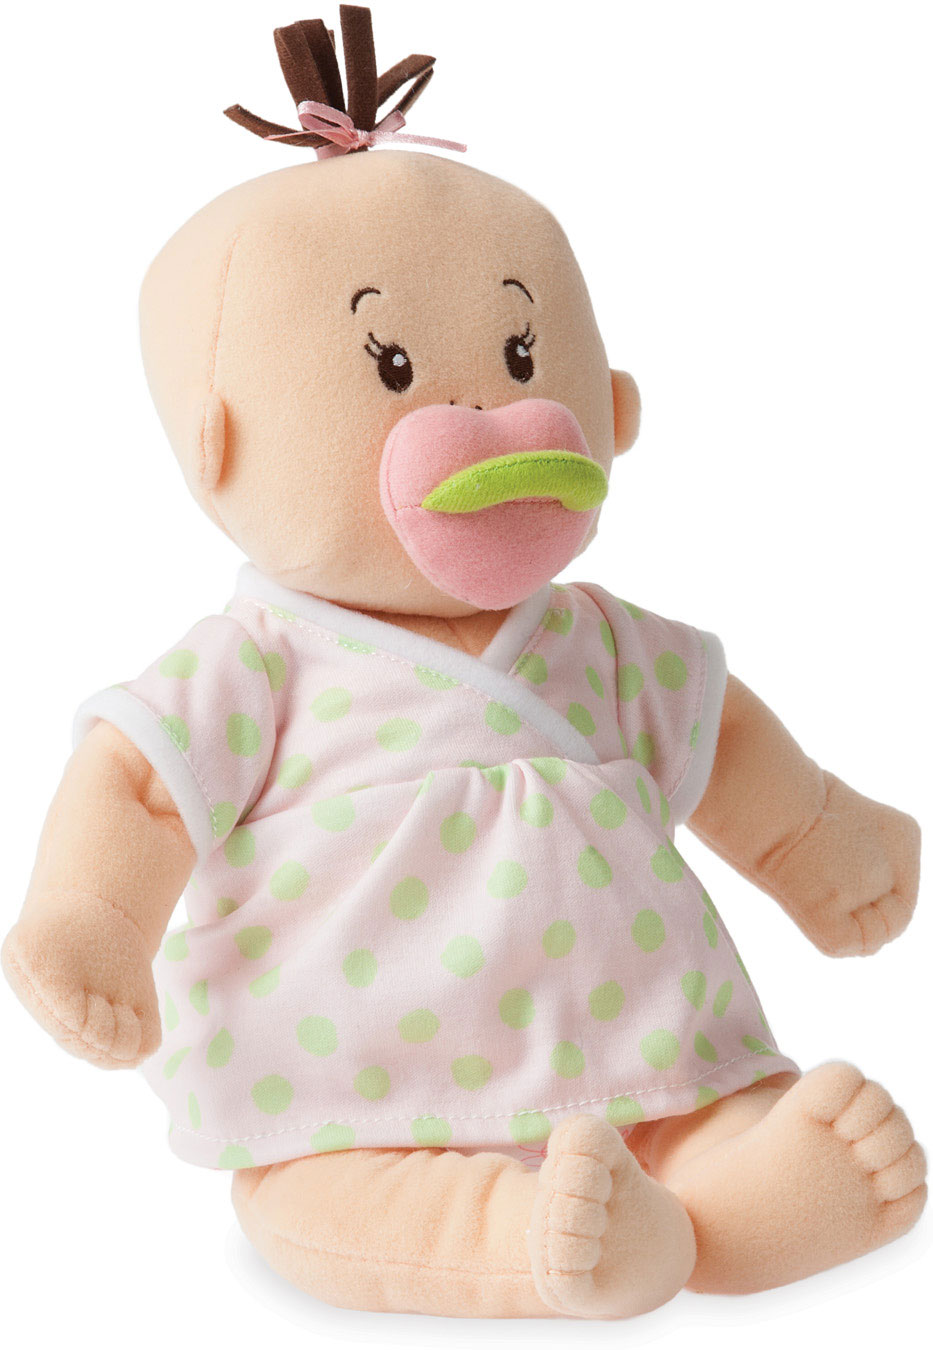 Baby Stella Sweet Sounds Doll Adventure Toys